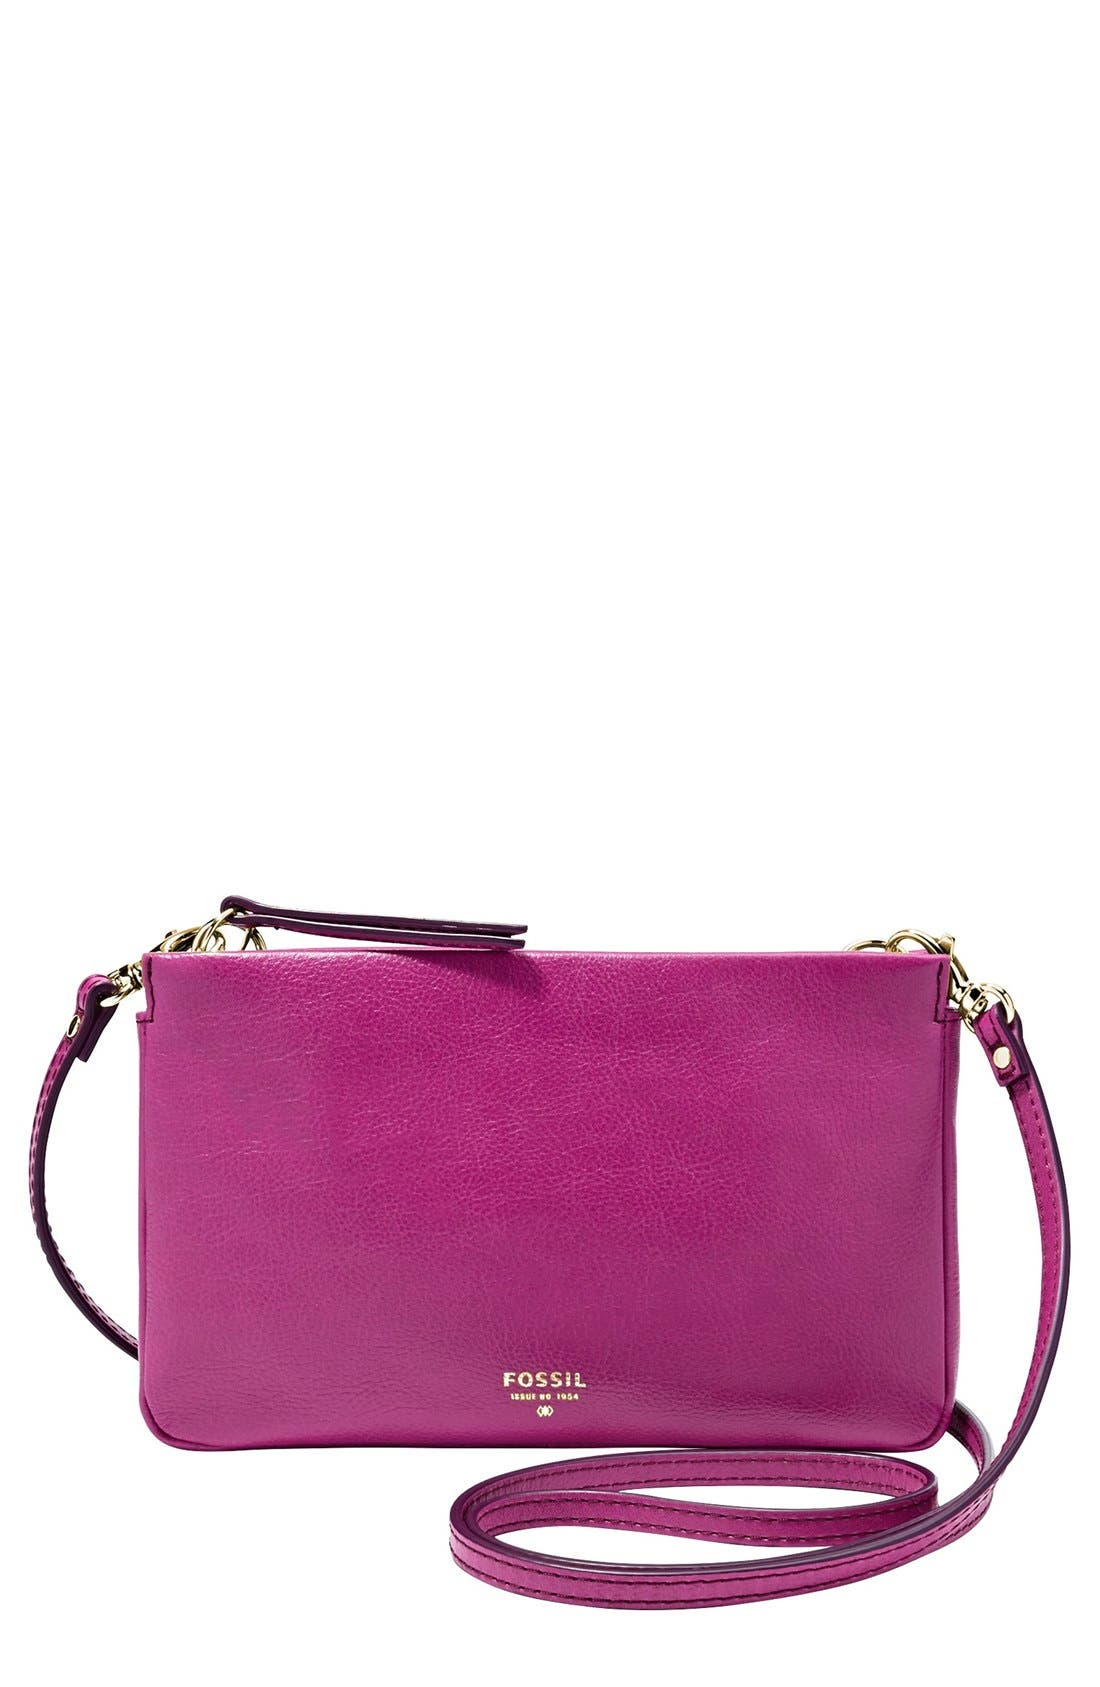 'Mini' Crossbody Bag,                             Main thumbnail 6, color,